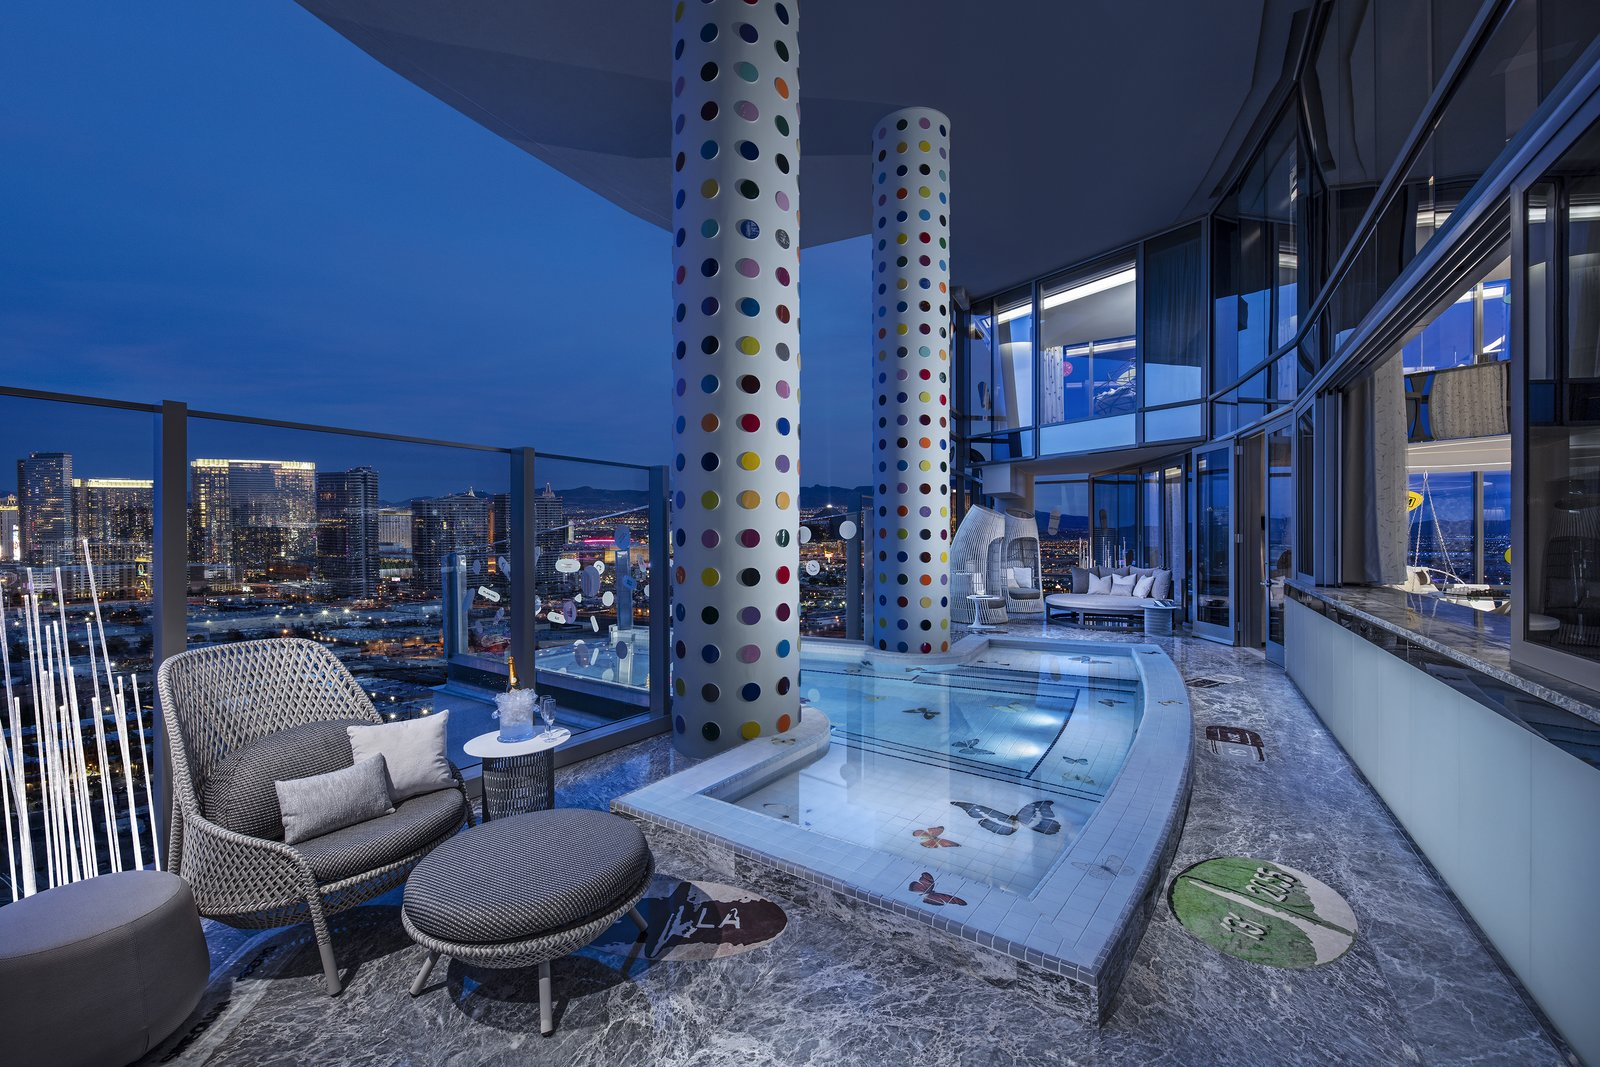 Outdoor, Small Pools, Tubs, Shower, Stone Patio, Porch, Deck, Metal Fences, Wall, Large Patio, Porch, Deck, Side Yard, and Plunge Pools, Tubs, Shower 240 signature spots cover each of the columns that frame the jacuzzi.  Photo 7 of 8 in Damien Hirst's New Suite at the Palms Casino Resort Costs $100K a Night